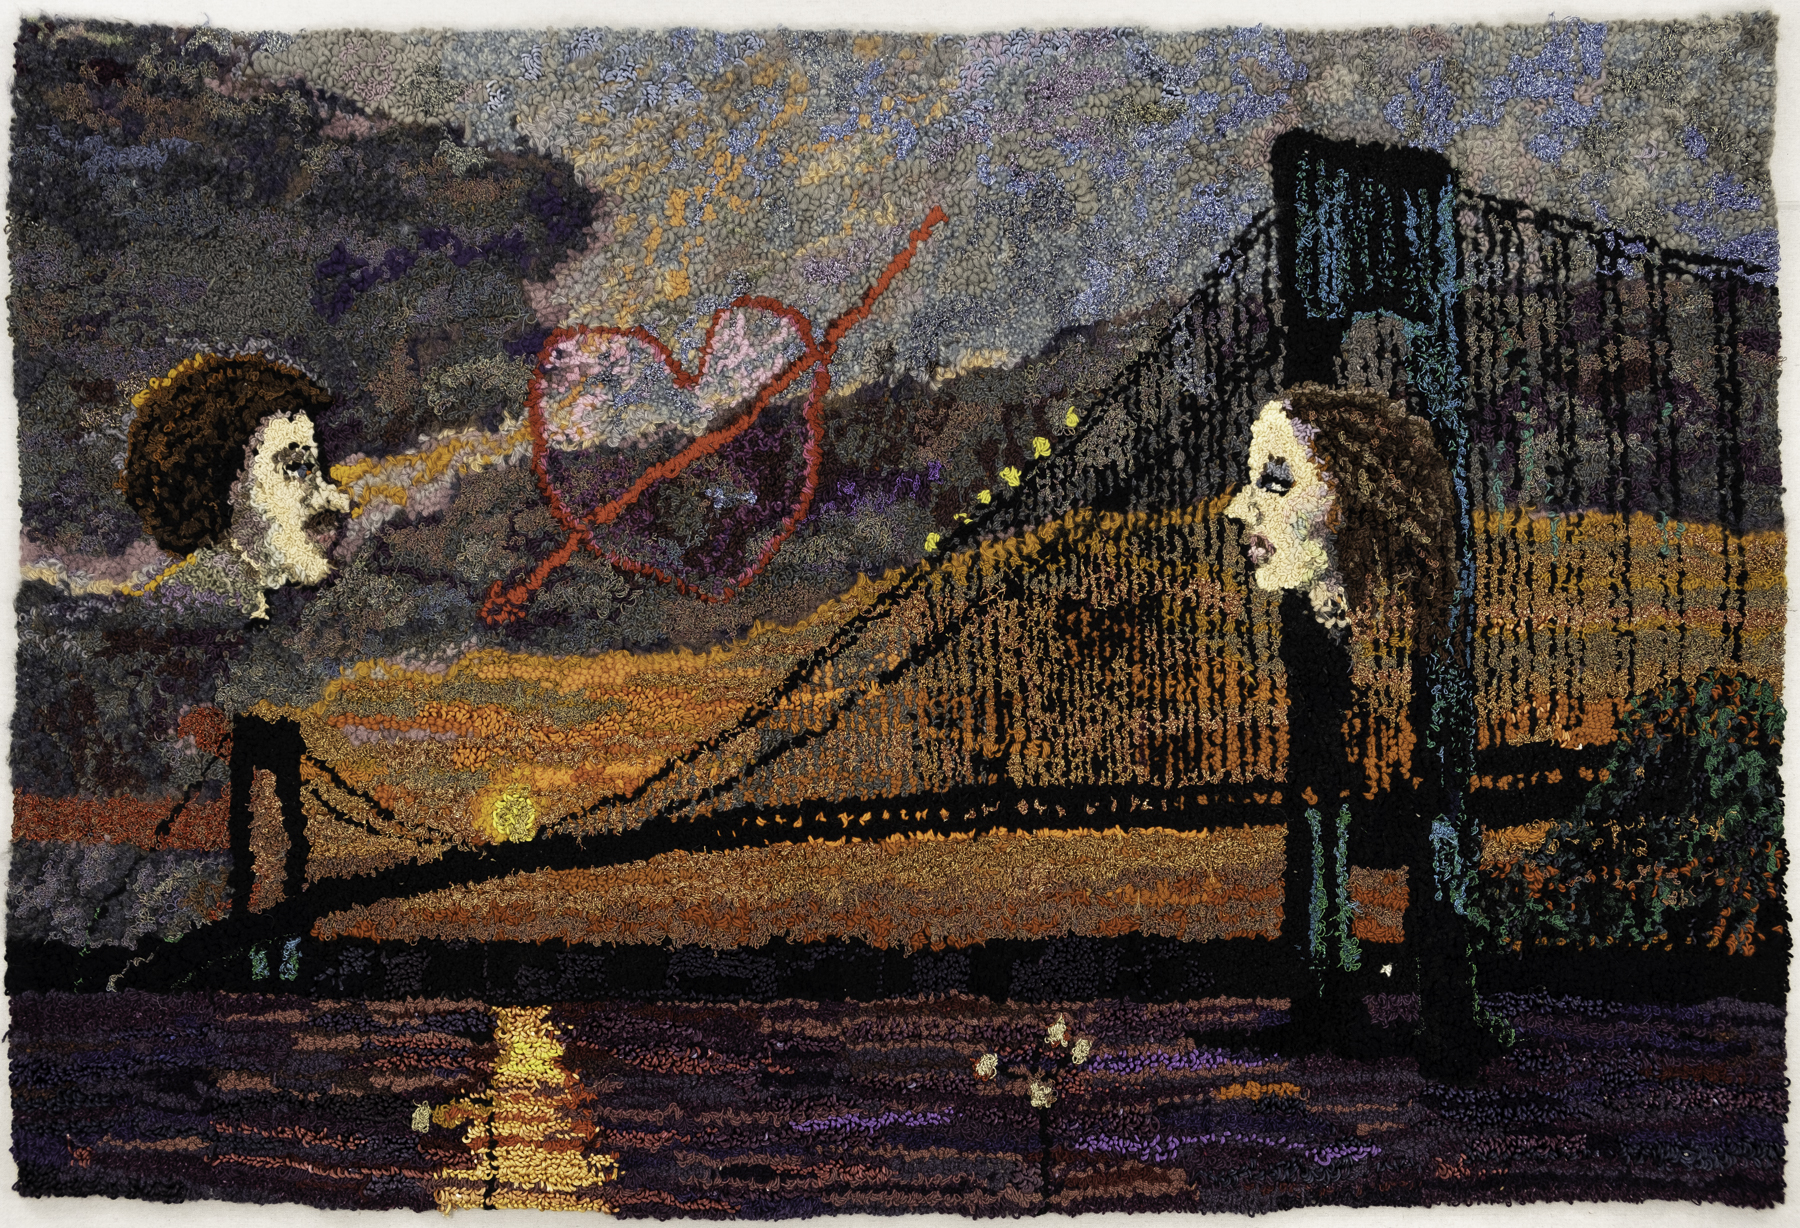 Two A-bridged, 1983-84 by Shari Urquhart. Photo courtesy of the Portrait Society Gallery.